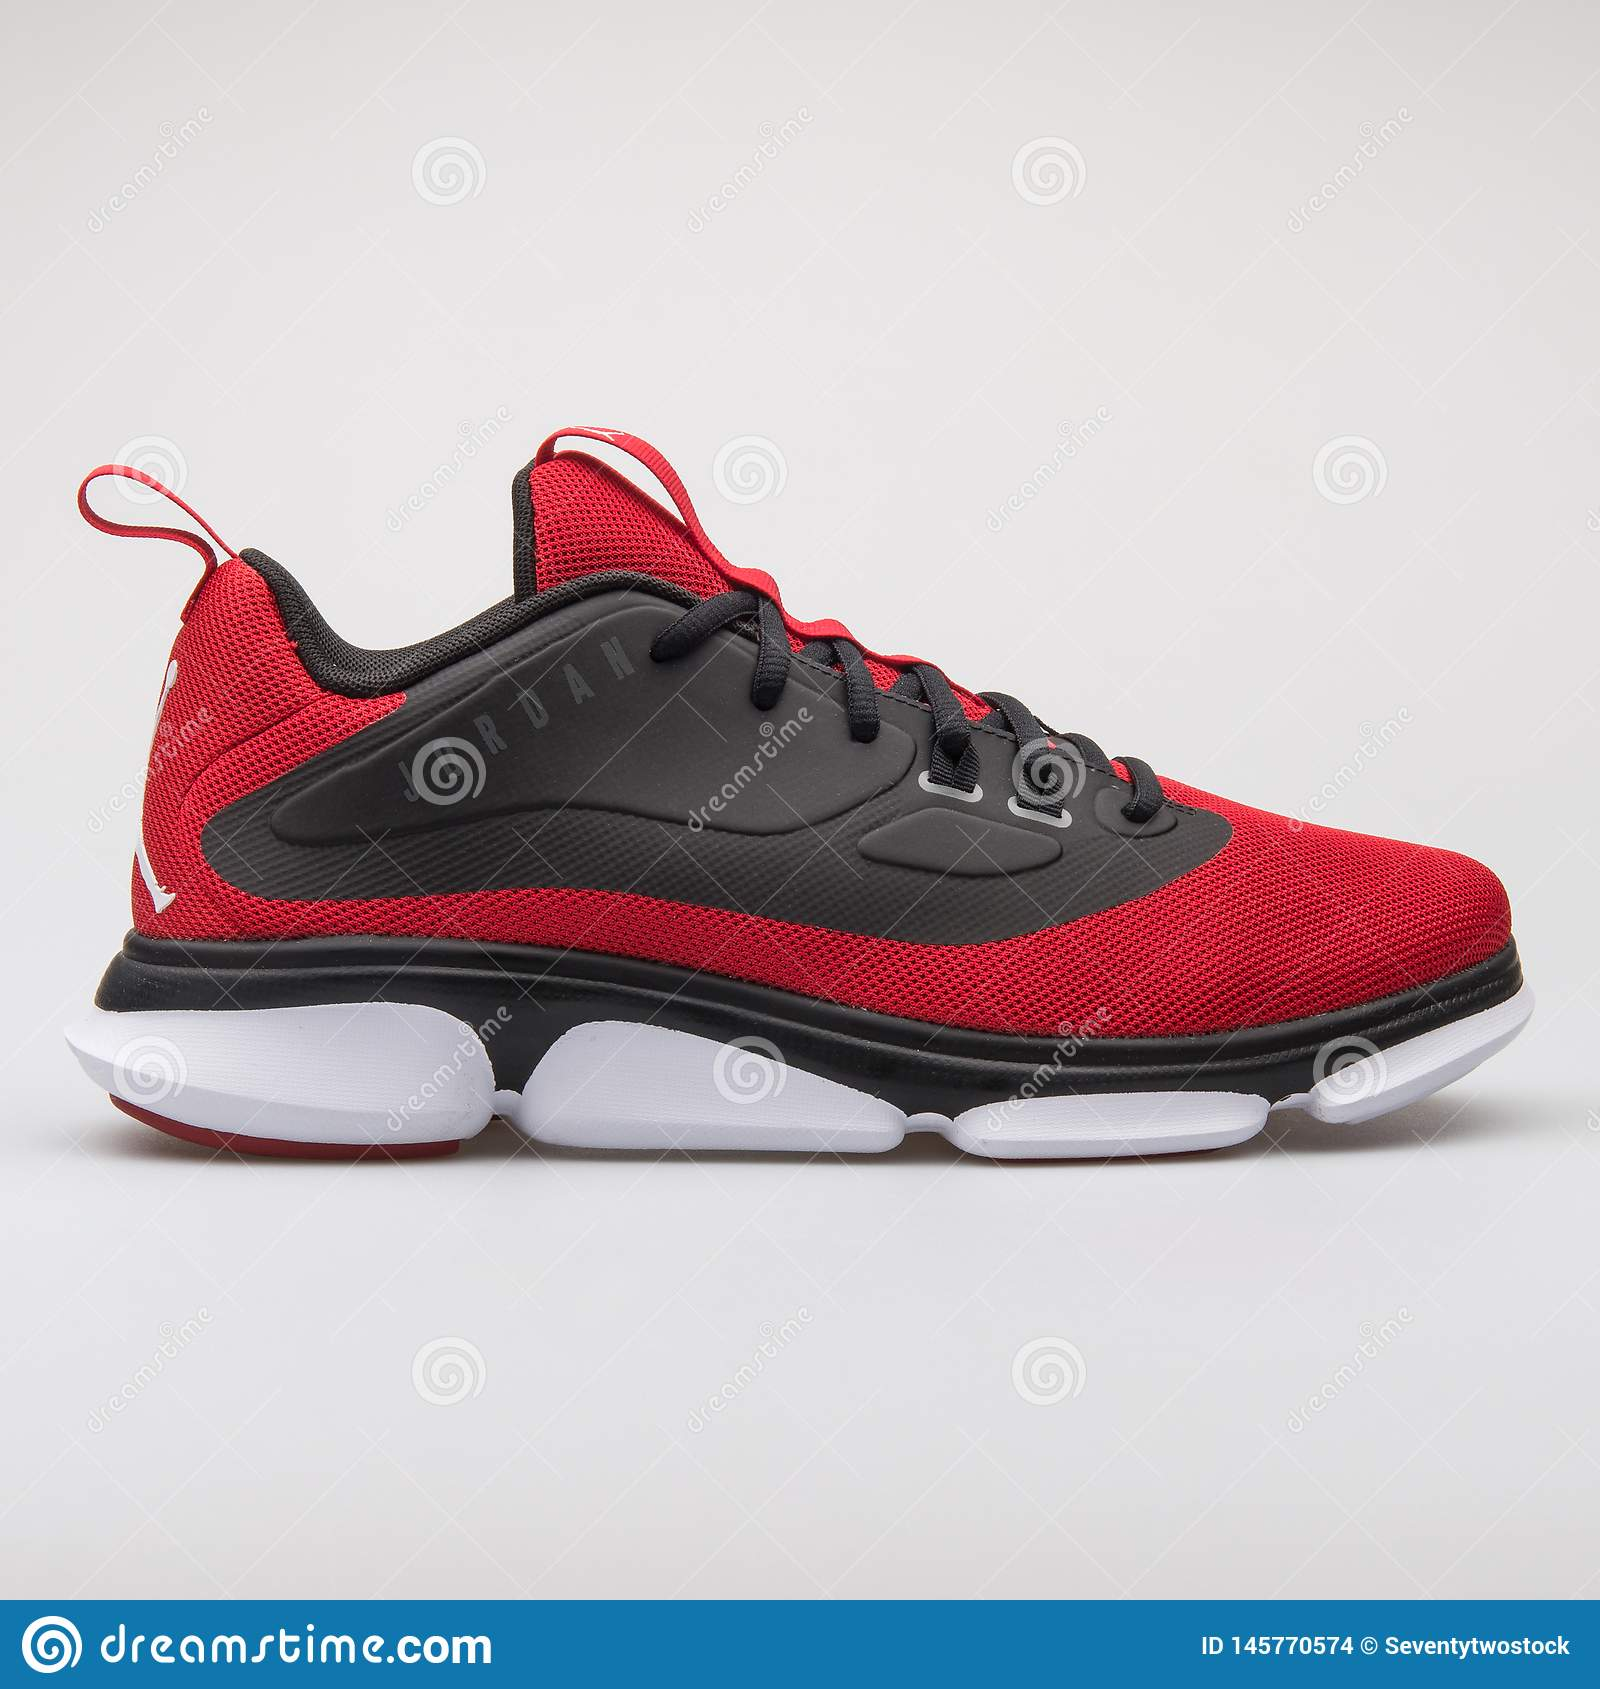 c301e66a VIENNA, AUSTRIA - AUGUST 7, 2017: Nike Jordan Impact TR red and black  sneaker on white background. More similar stock images